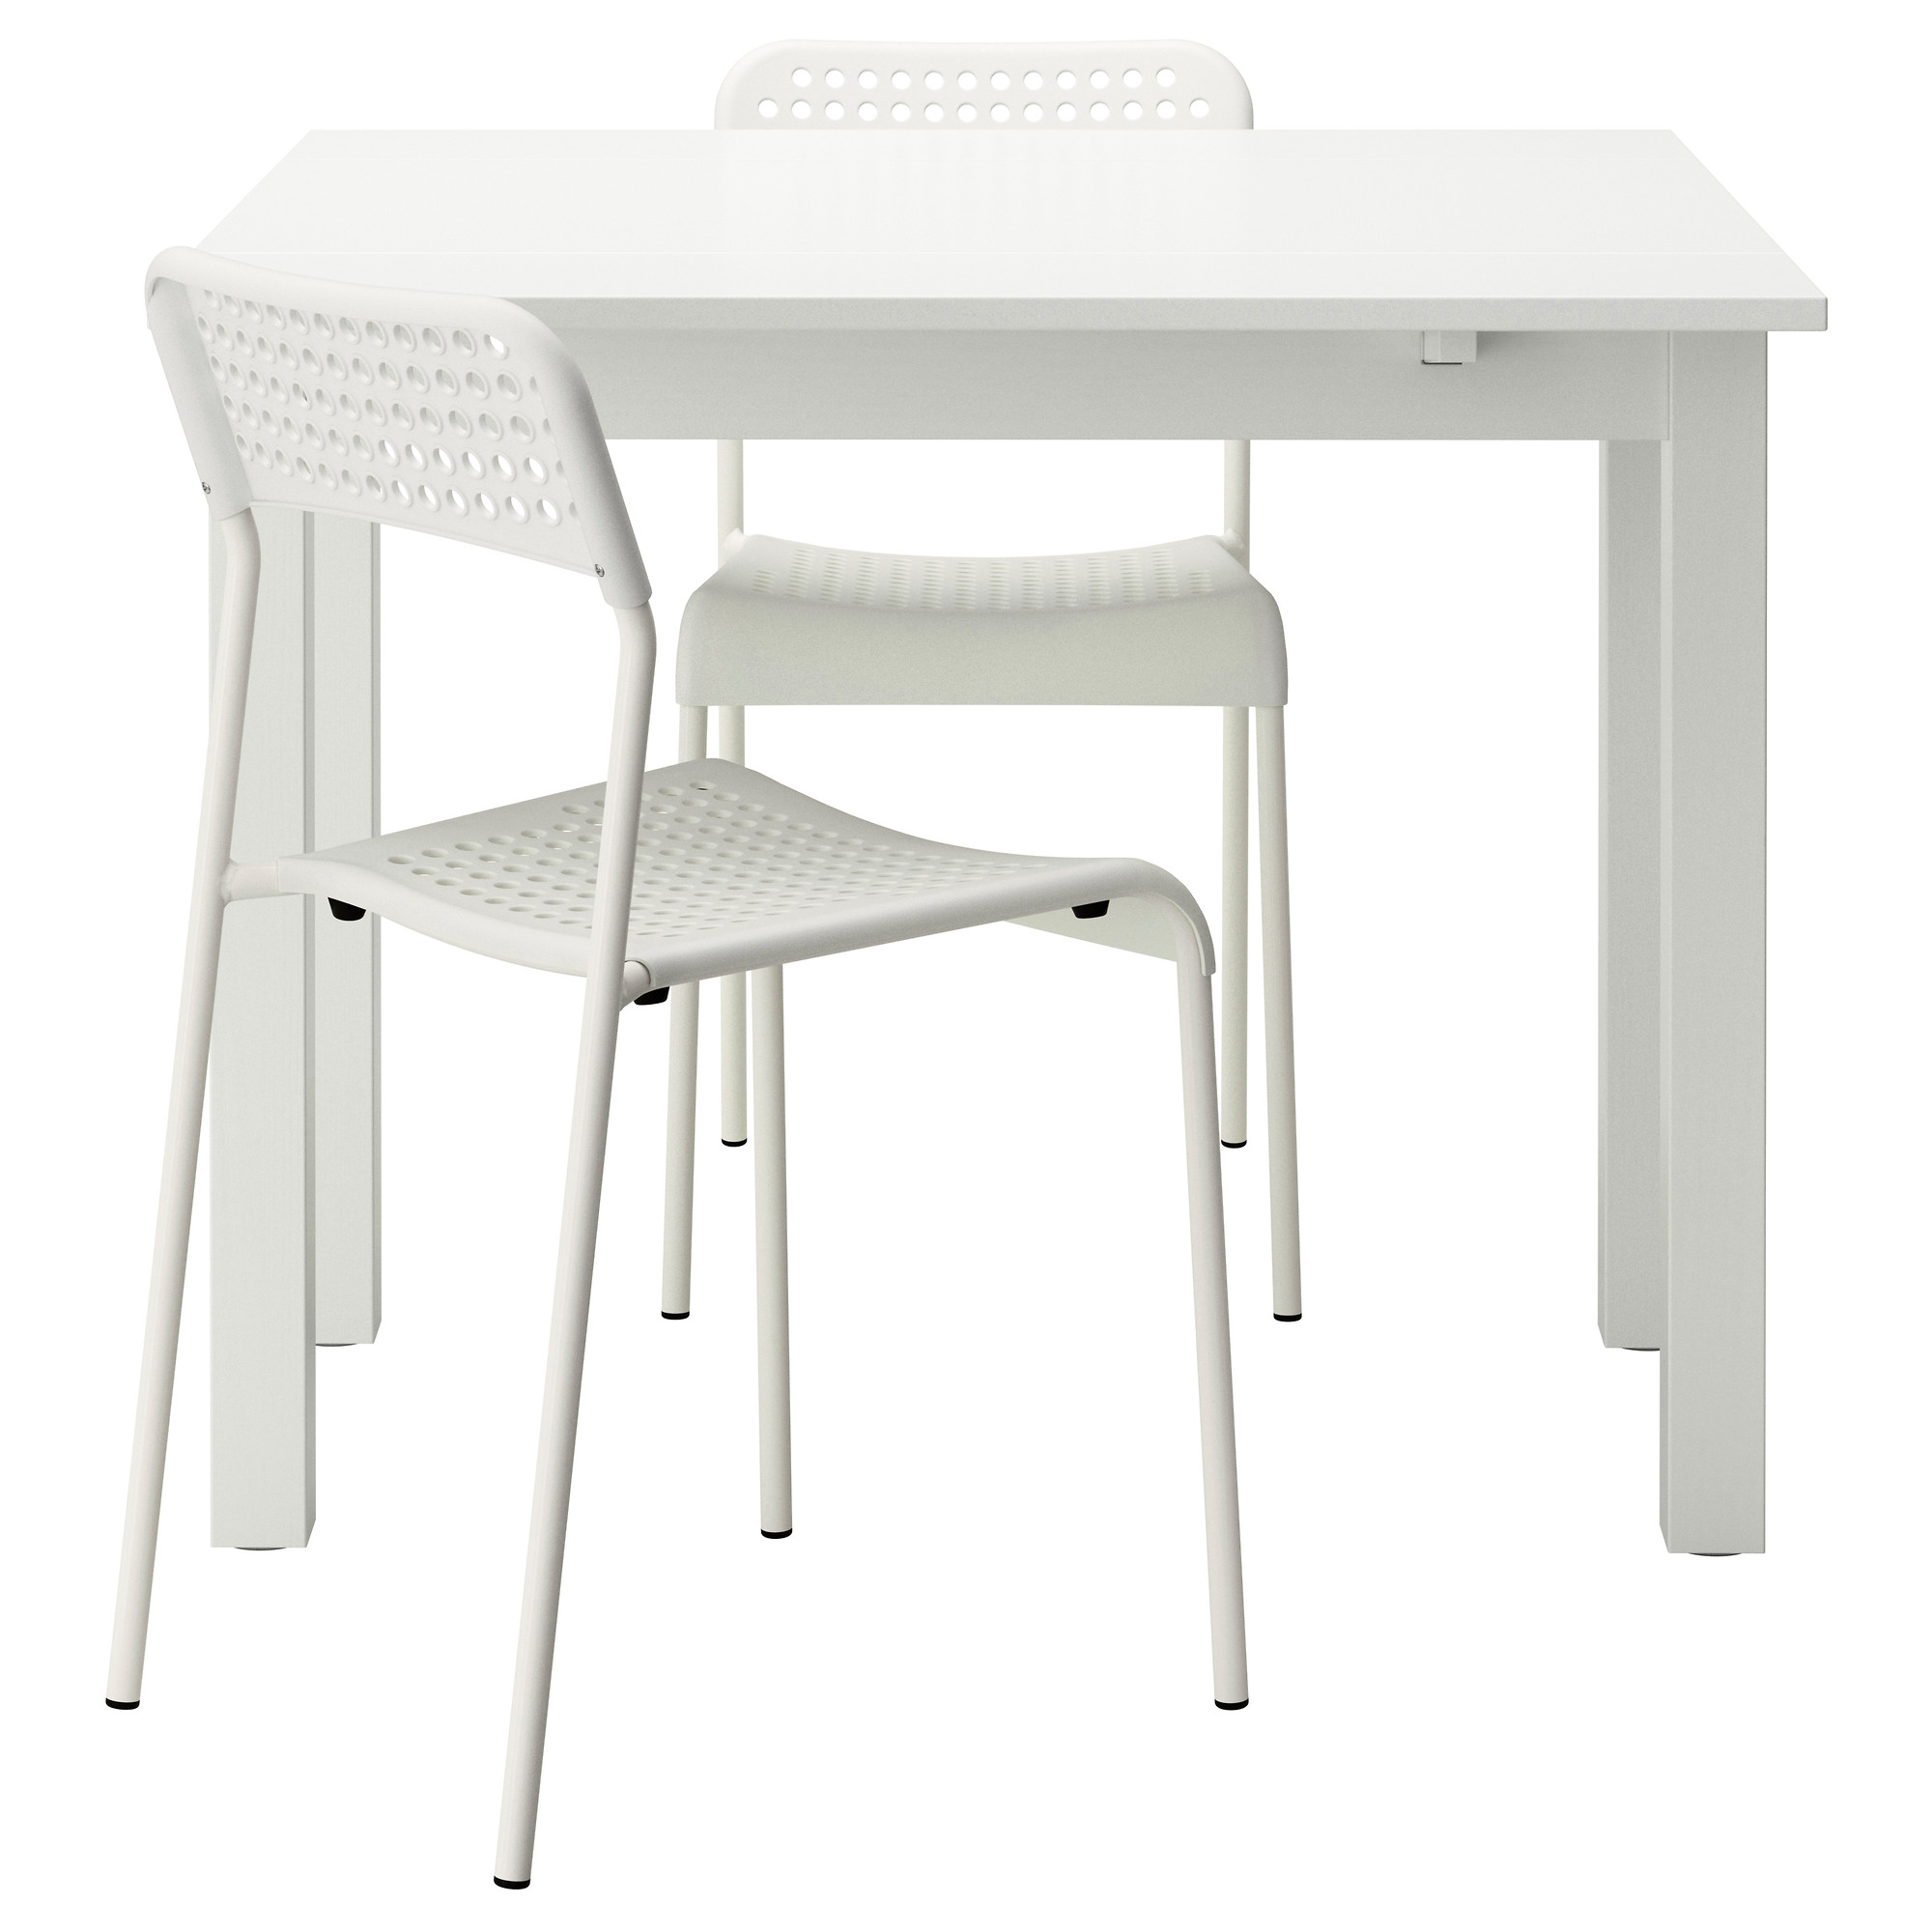 Table et chaise de cuisine ikea table chaise cuisine for Table blanche ikea